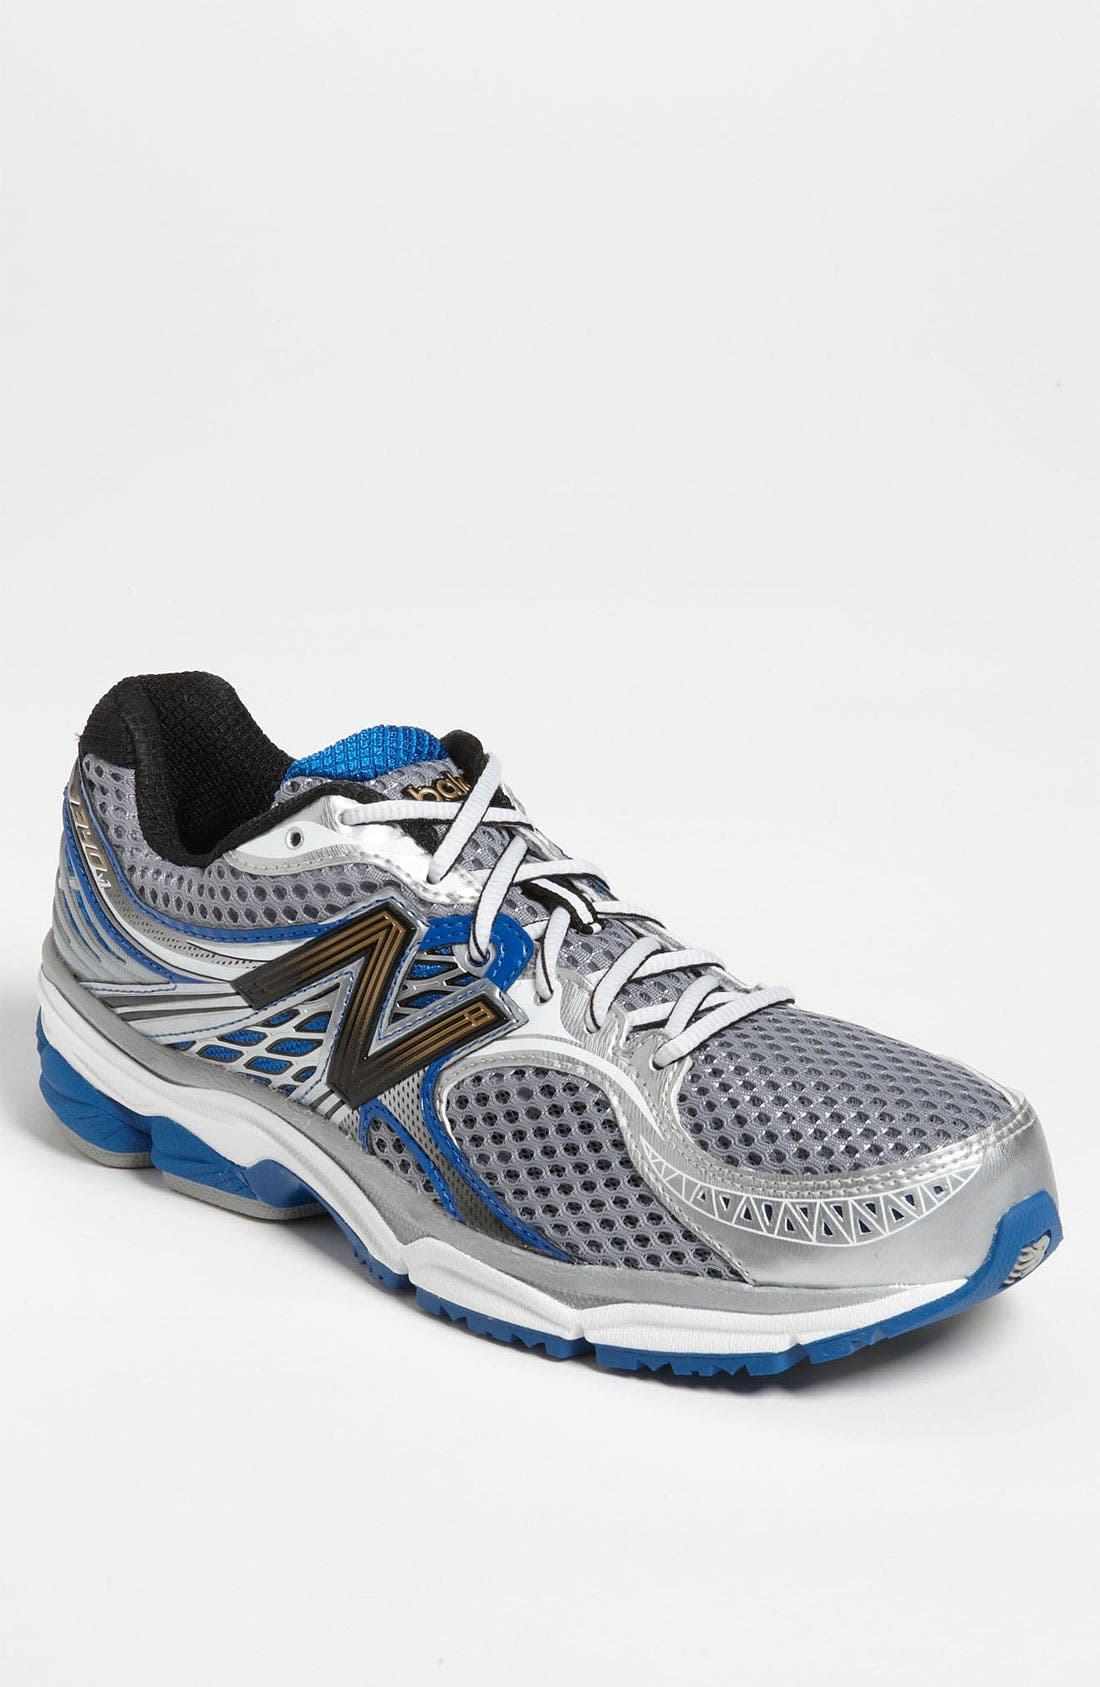 Alternate Image 1 Selected - New Balance '1340' Running Shoe (Men) (Online Only)